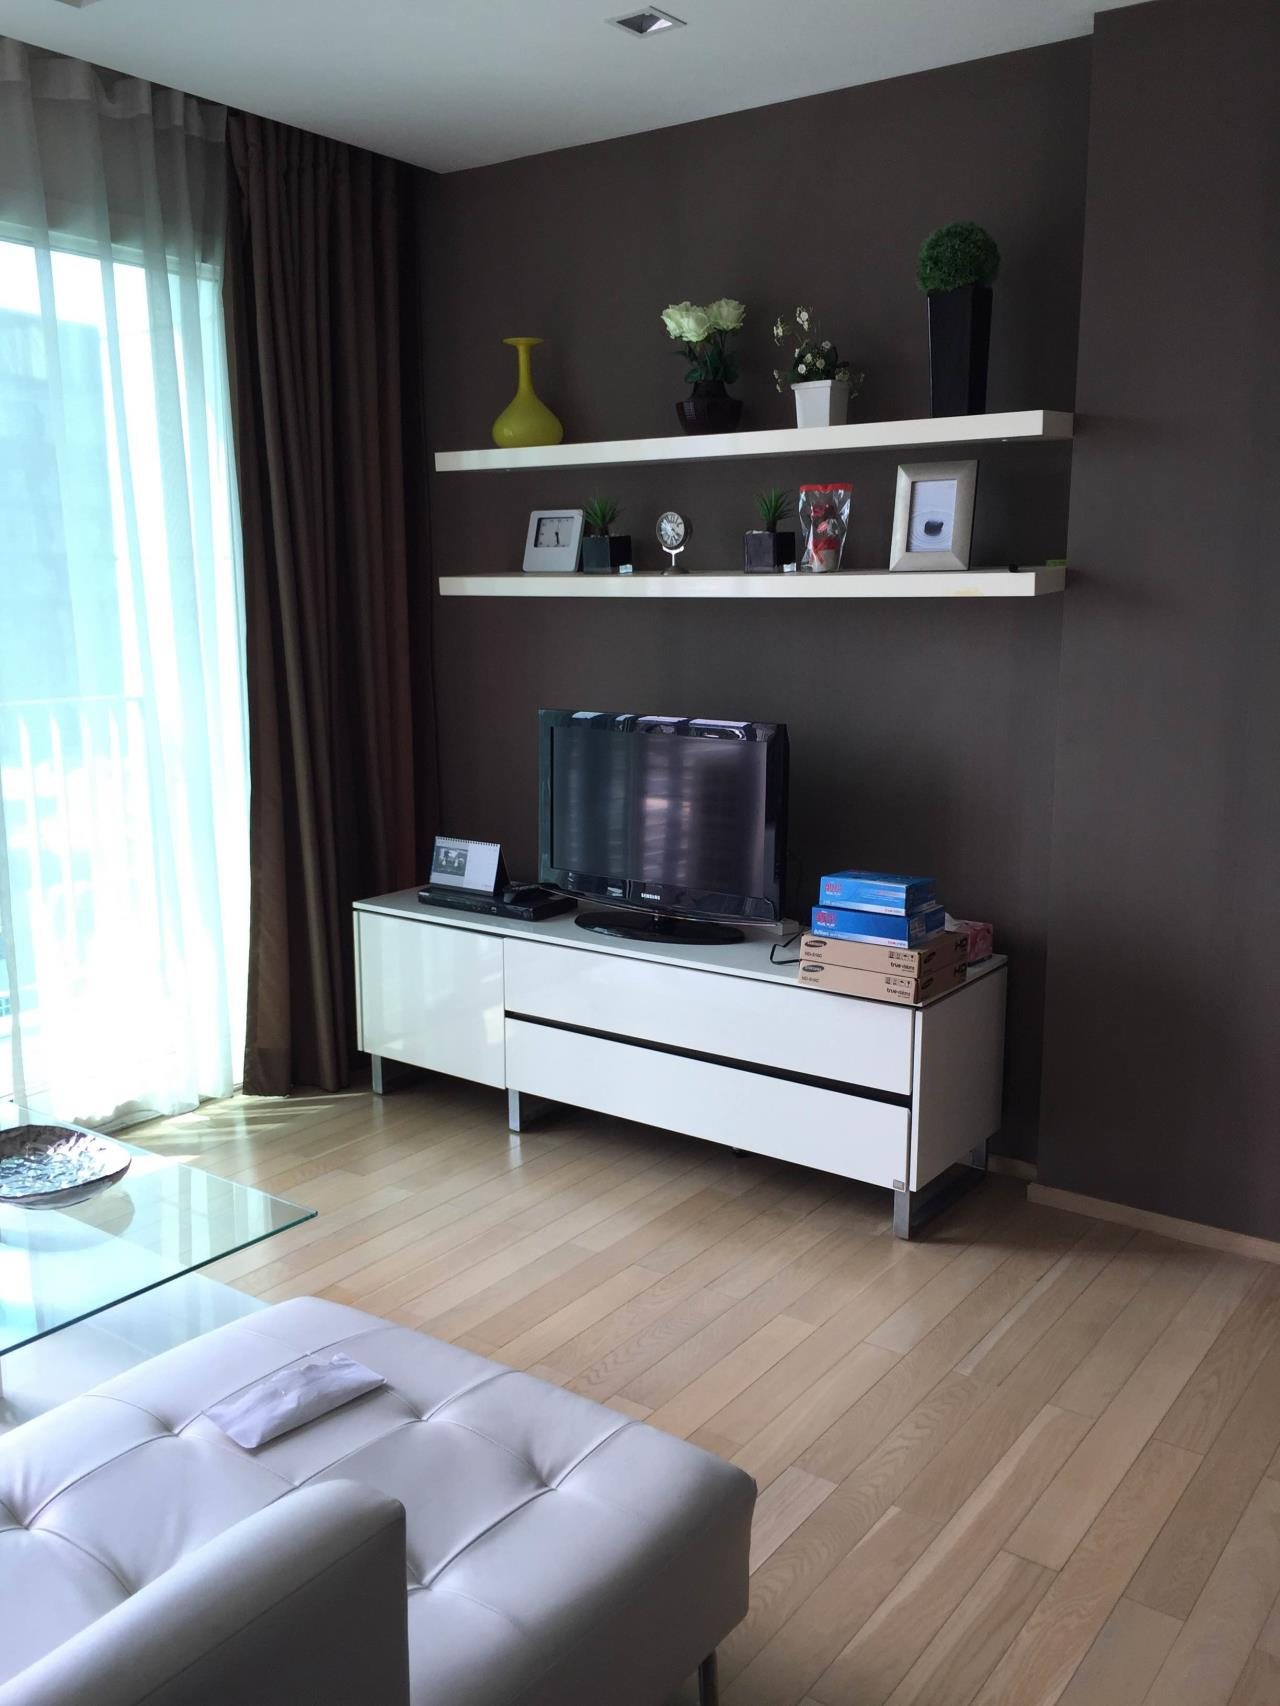 Piri Property Agency's Exclusive 2 Bedroom Condo in Thonglor - Fully furnished 4